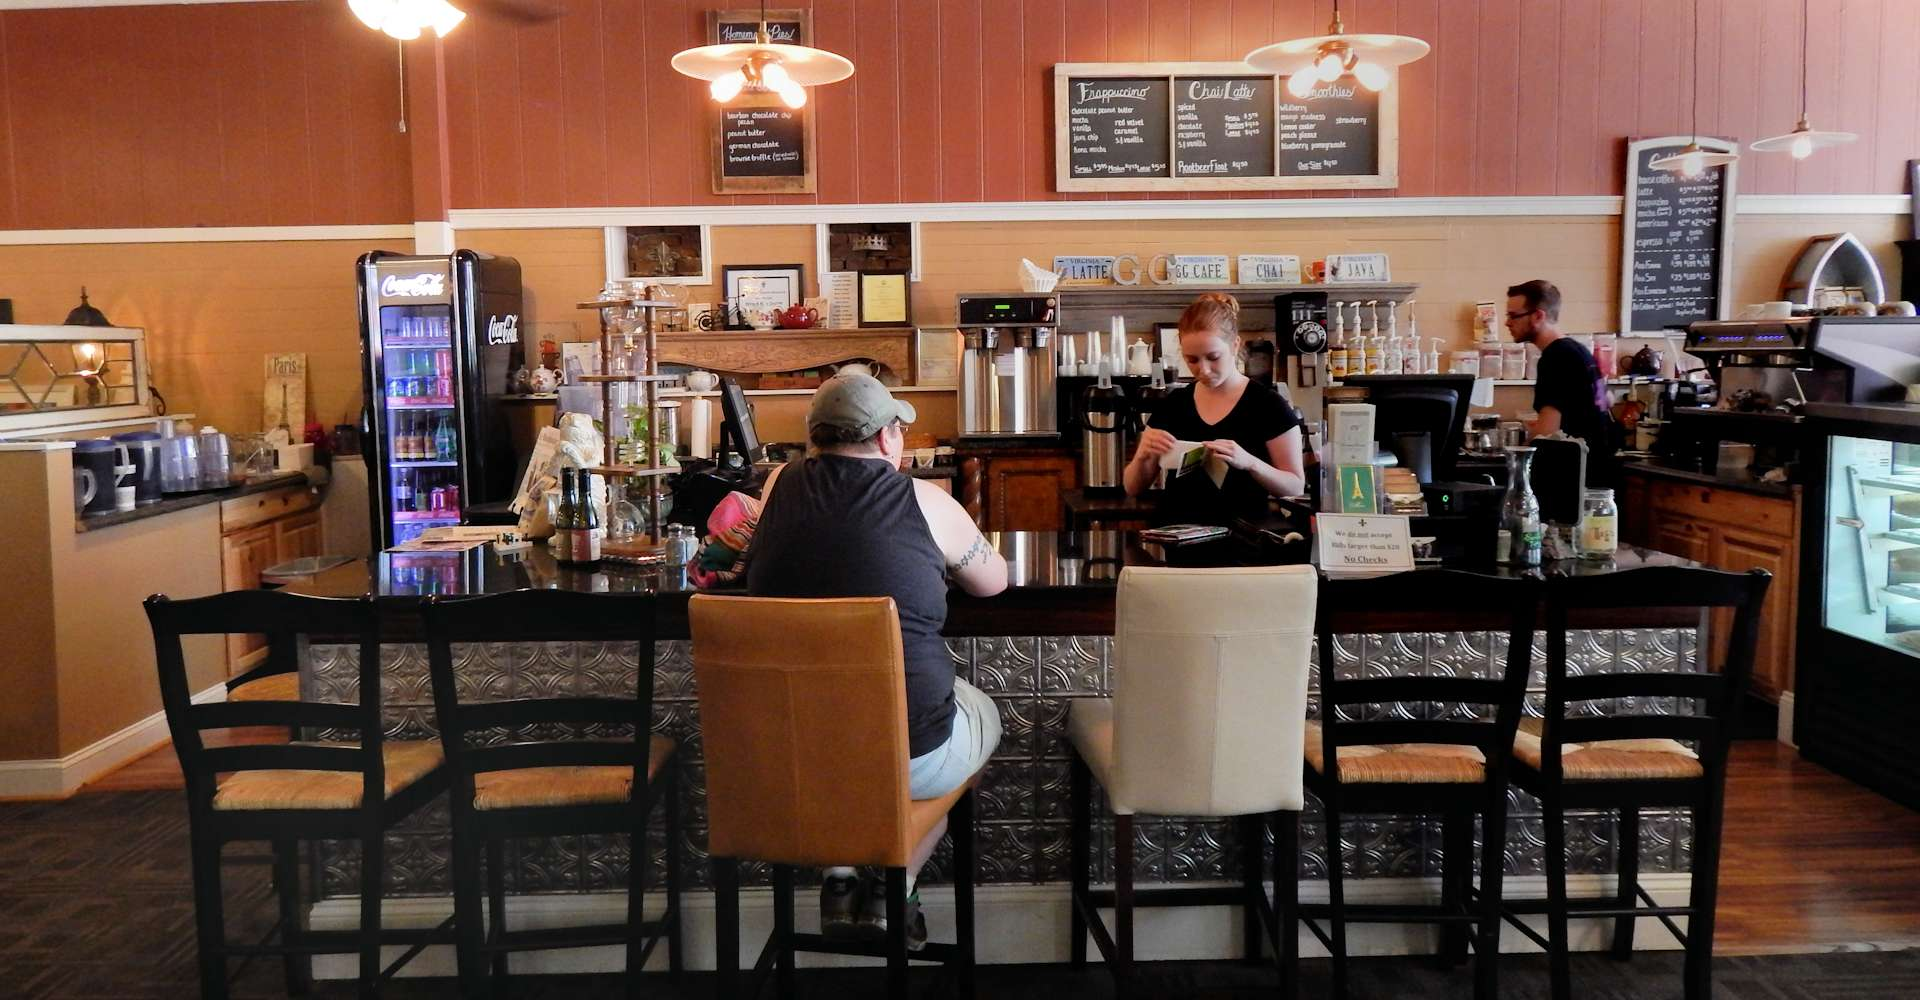 Gathering-Grounds-Patisserie-and-Cafe-on-Main-Street-Luray-Virgini